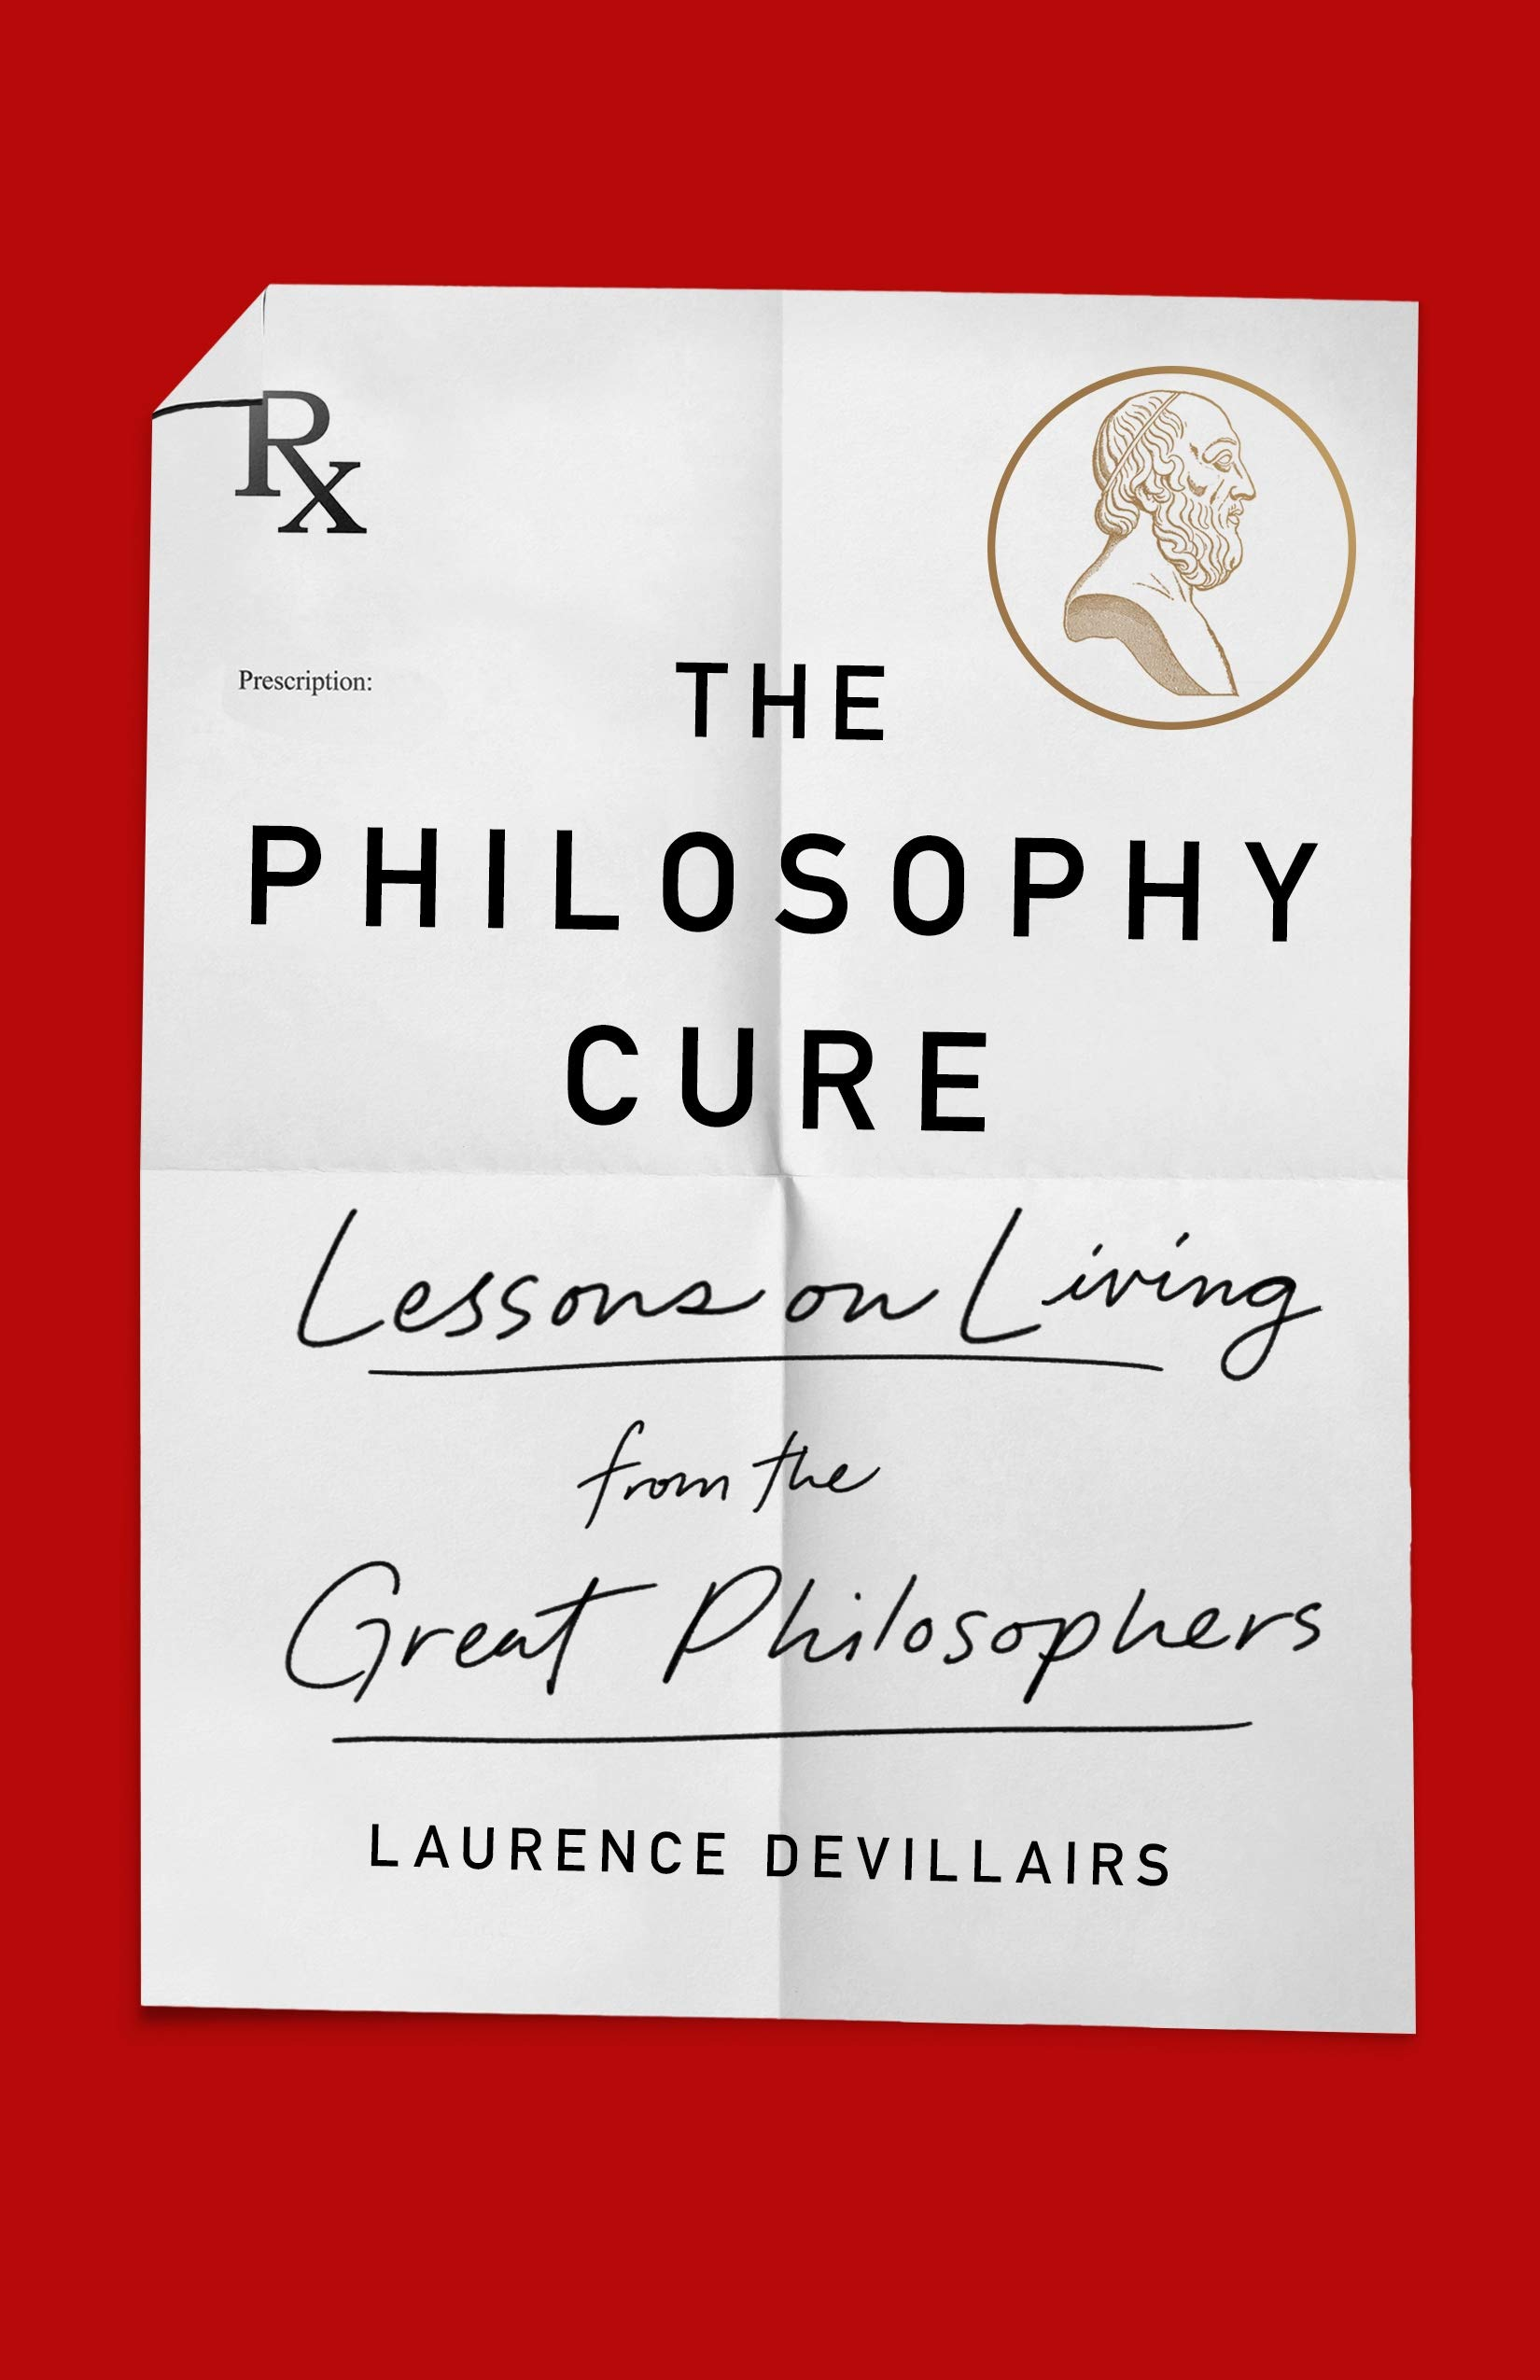 The Philosophy Cure: Lessons on Living from the Great Philosophers